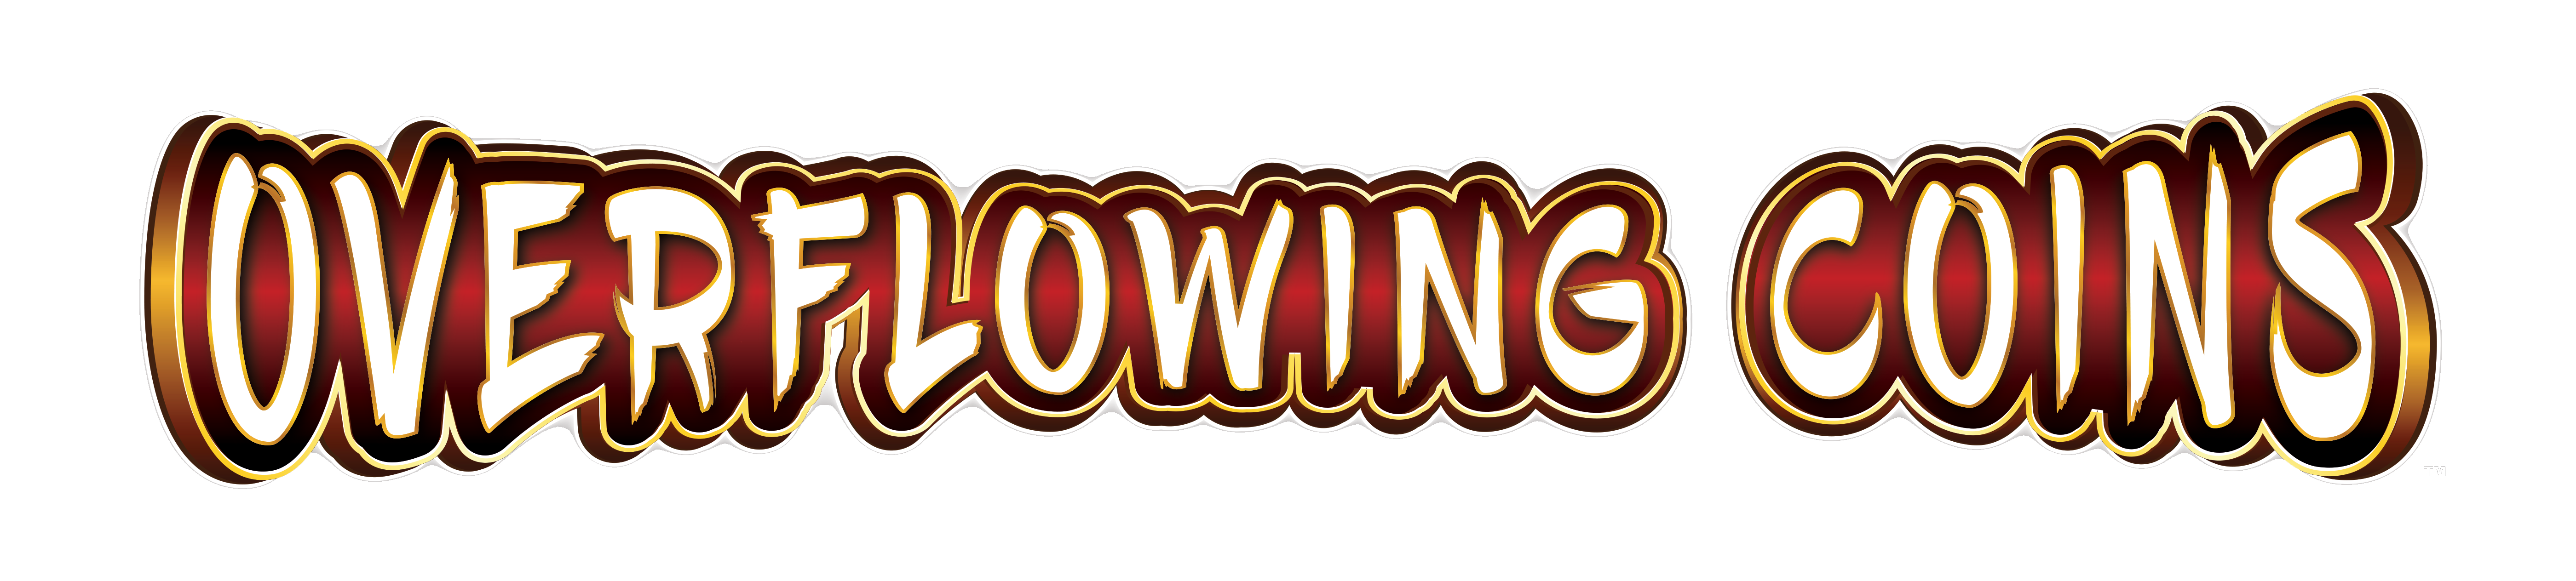 Overflowing Coins Logo